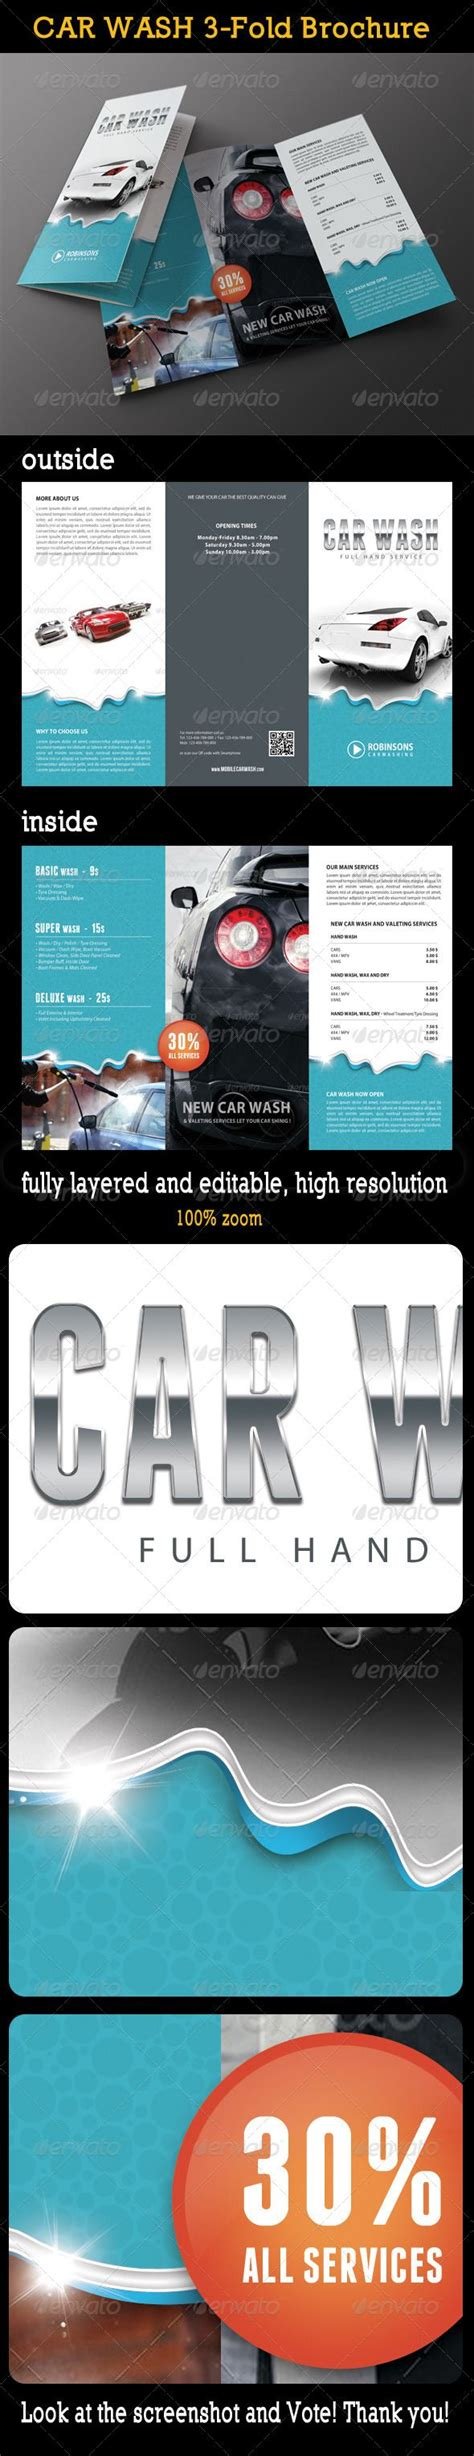 Car Wash 3 Fold Brochure 02 Car Wash Brochure Template And Brochures Franchise Brochure Templates